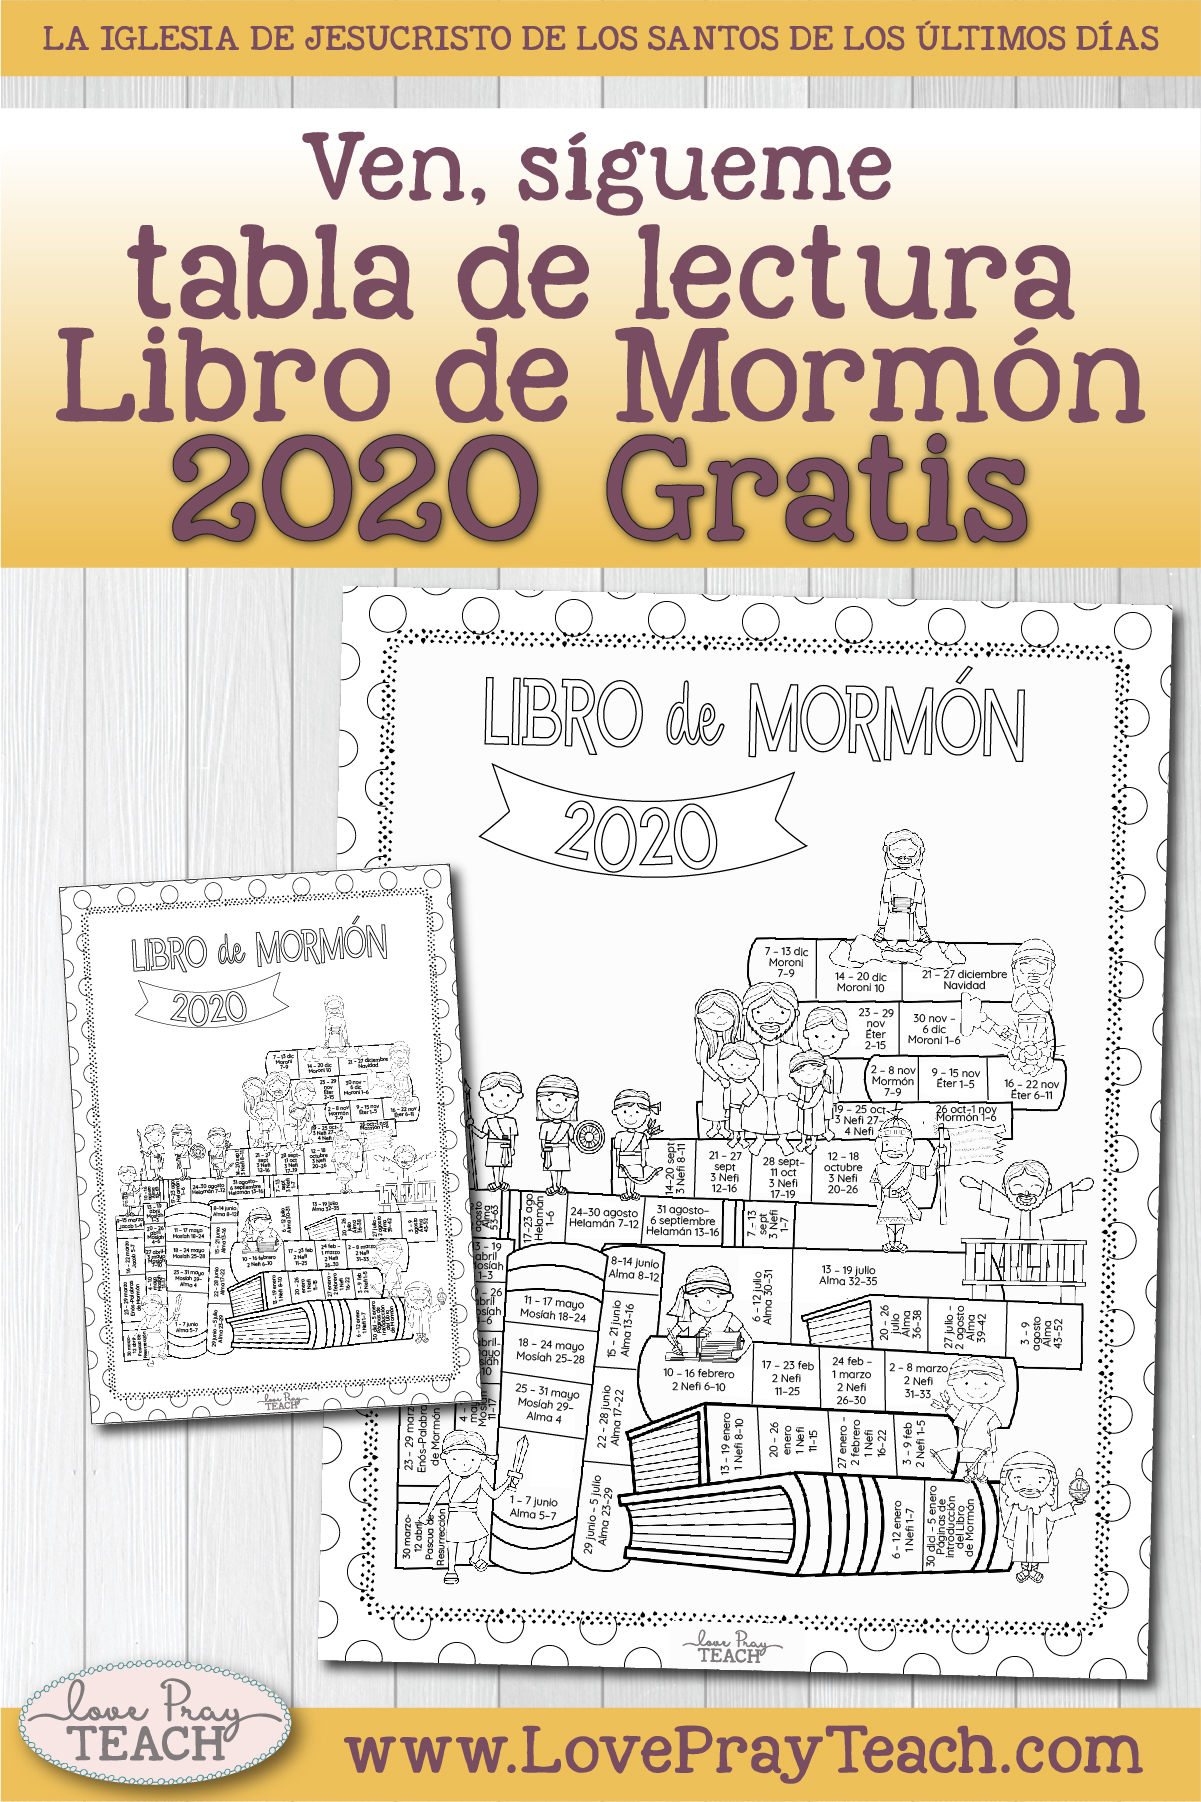 Free Book of Mormon Come, Follow Me Reading Chart in Spanish! www.LovePrayTeach.com